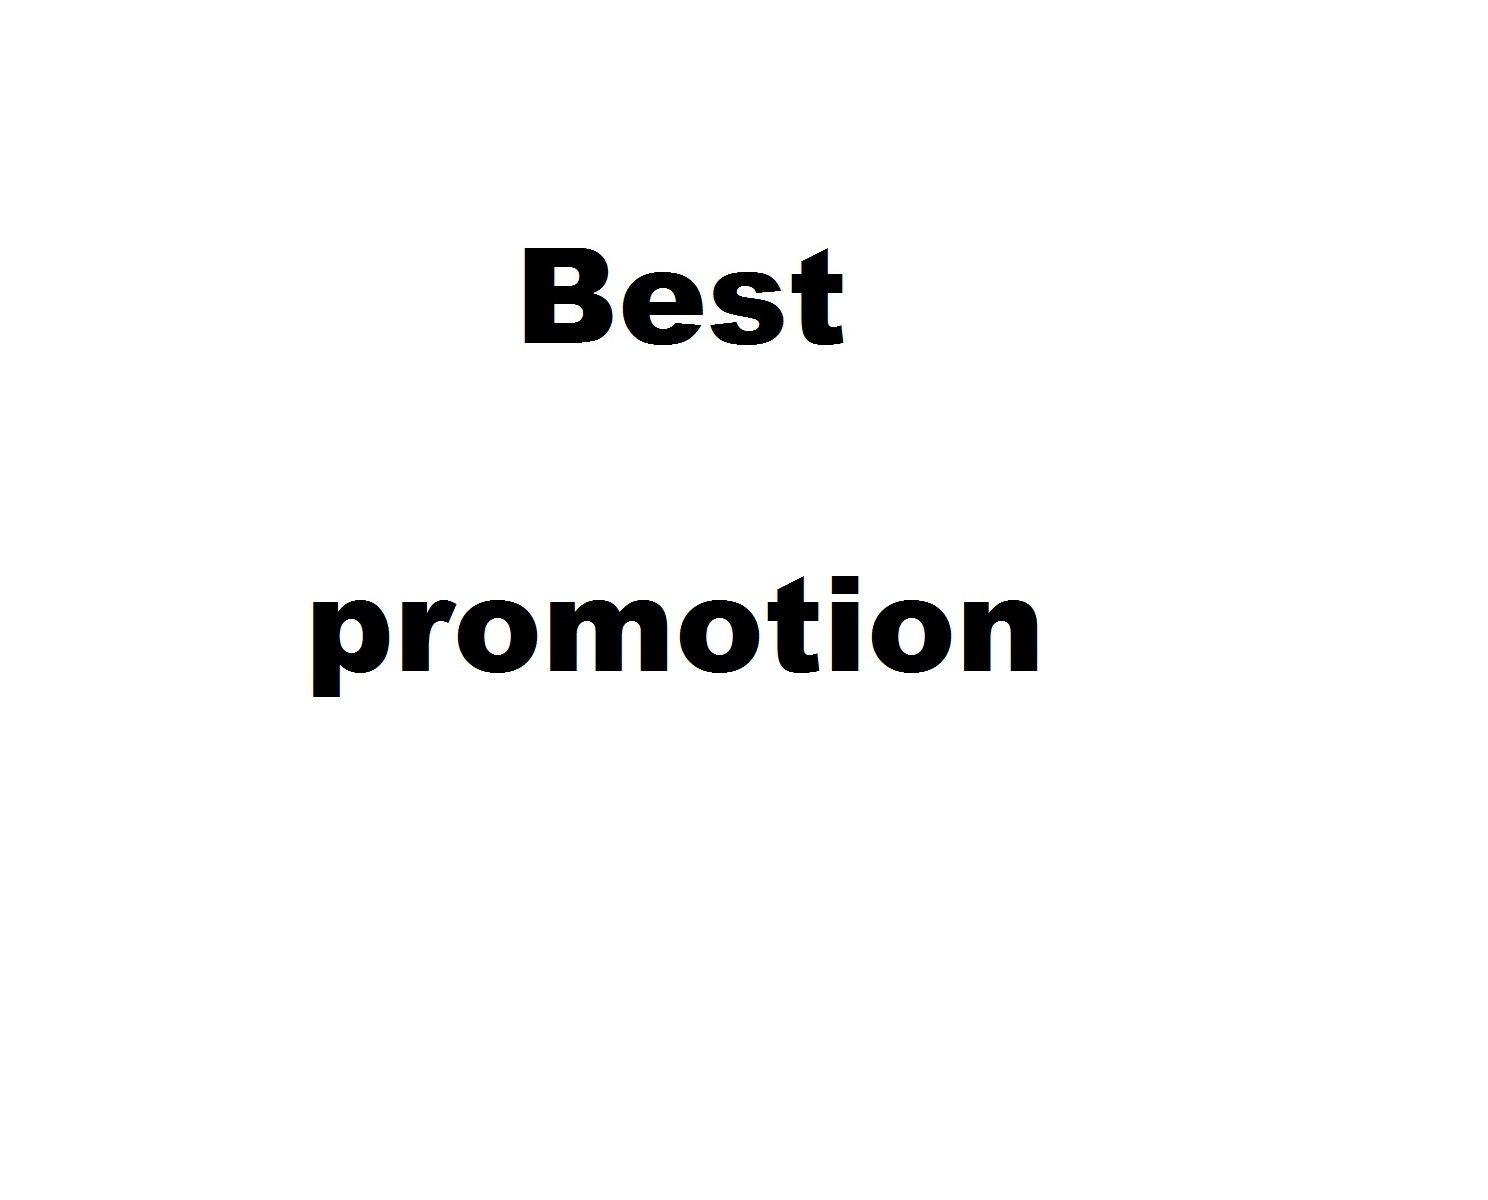 mustc promotion for your track or playlist